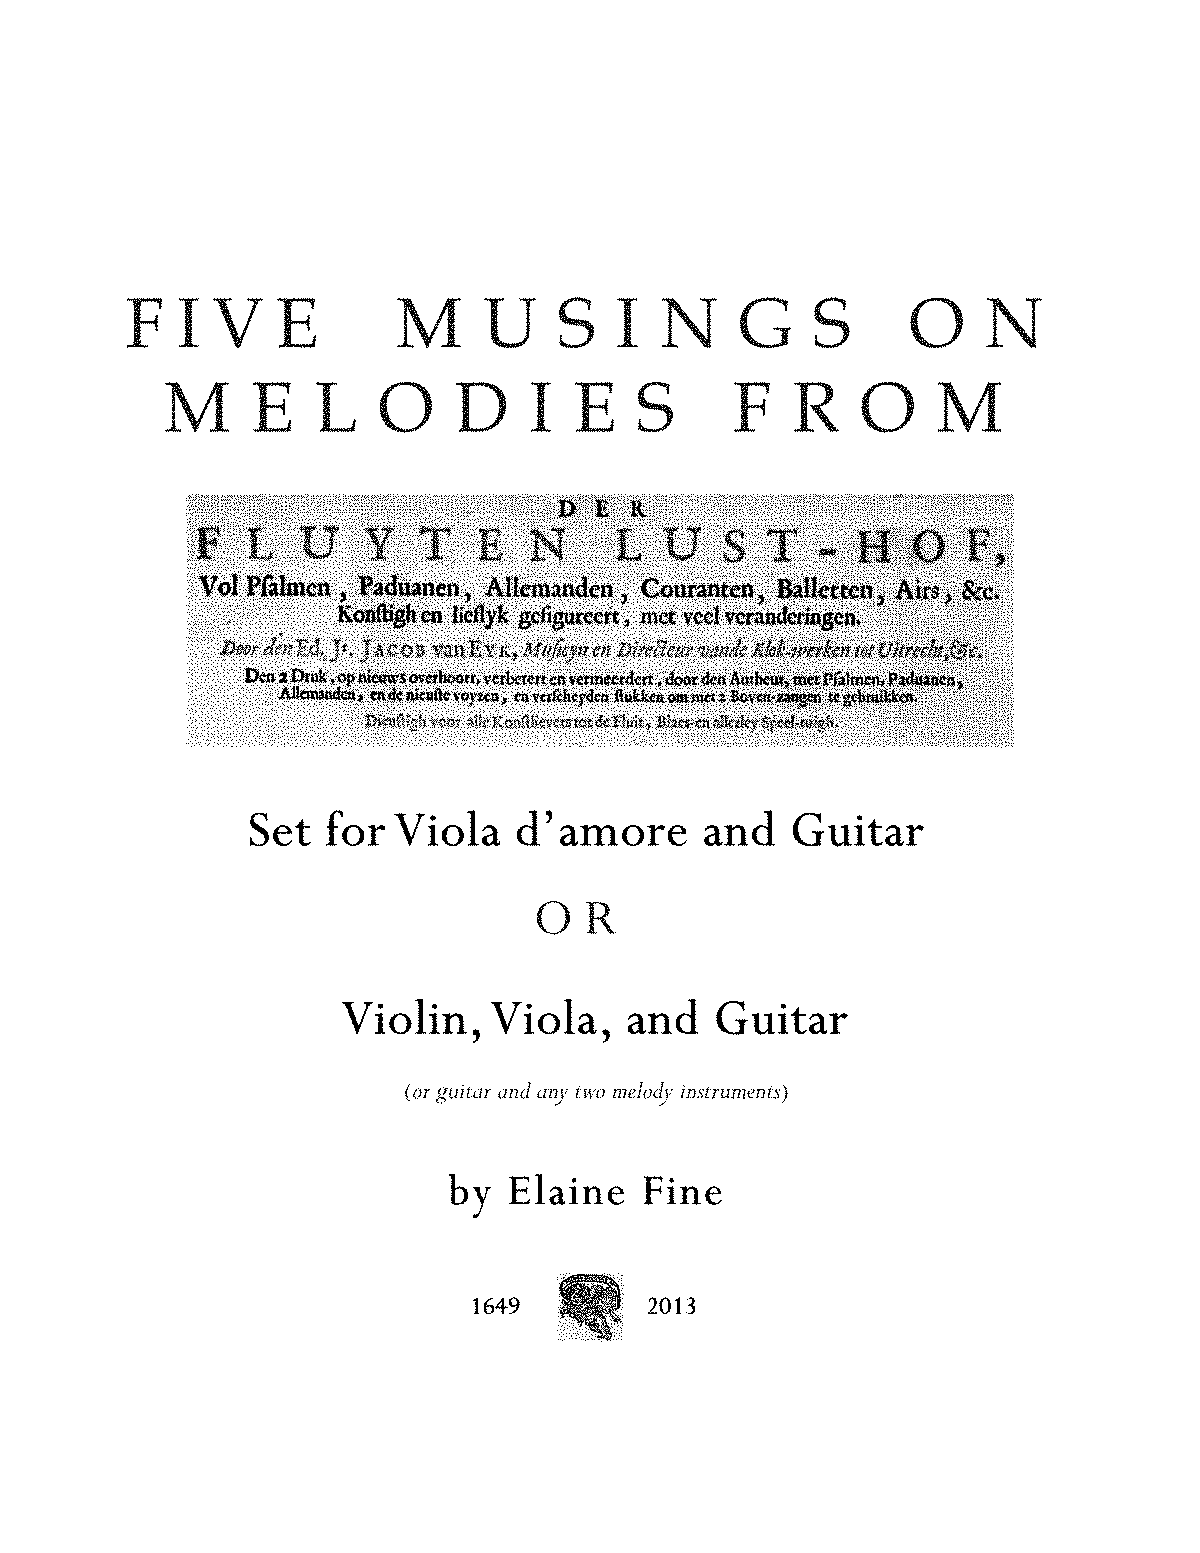 PMLP456378-Five Musings on Melodies from van Eyke Score and Parts.pdf